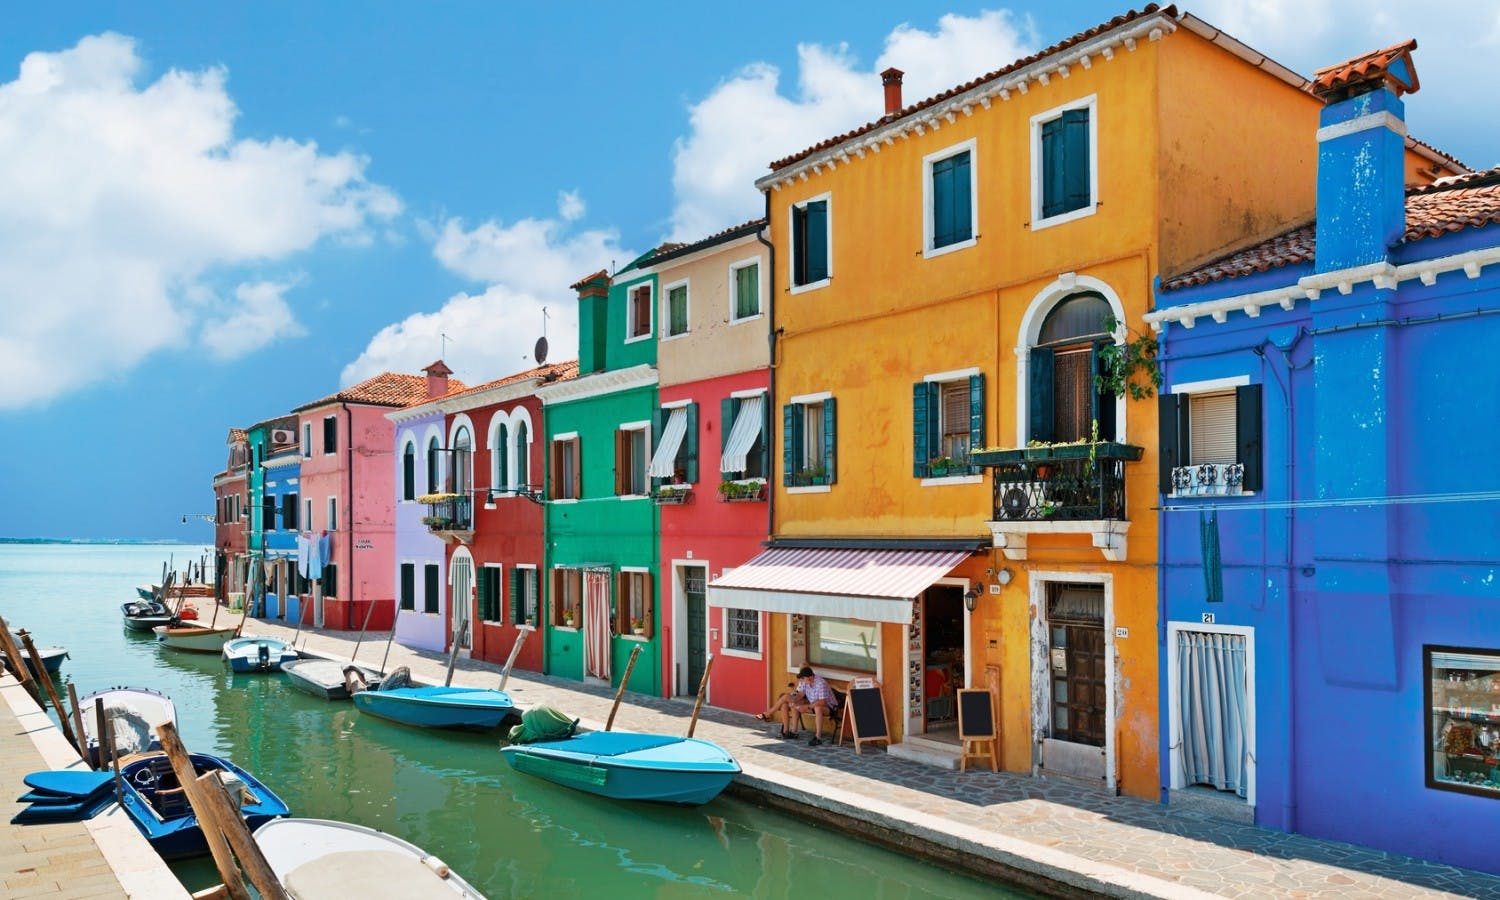 colorful houses by the water canal at the island Burano © pitrs_Fotolia_71280783.jpg